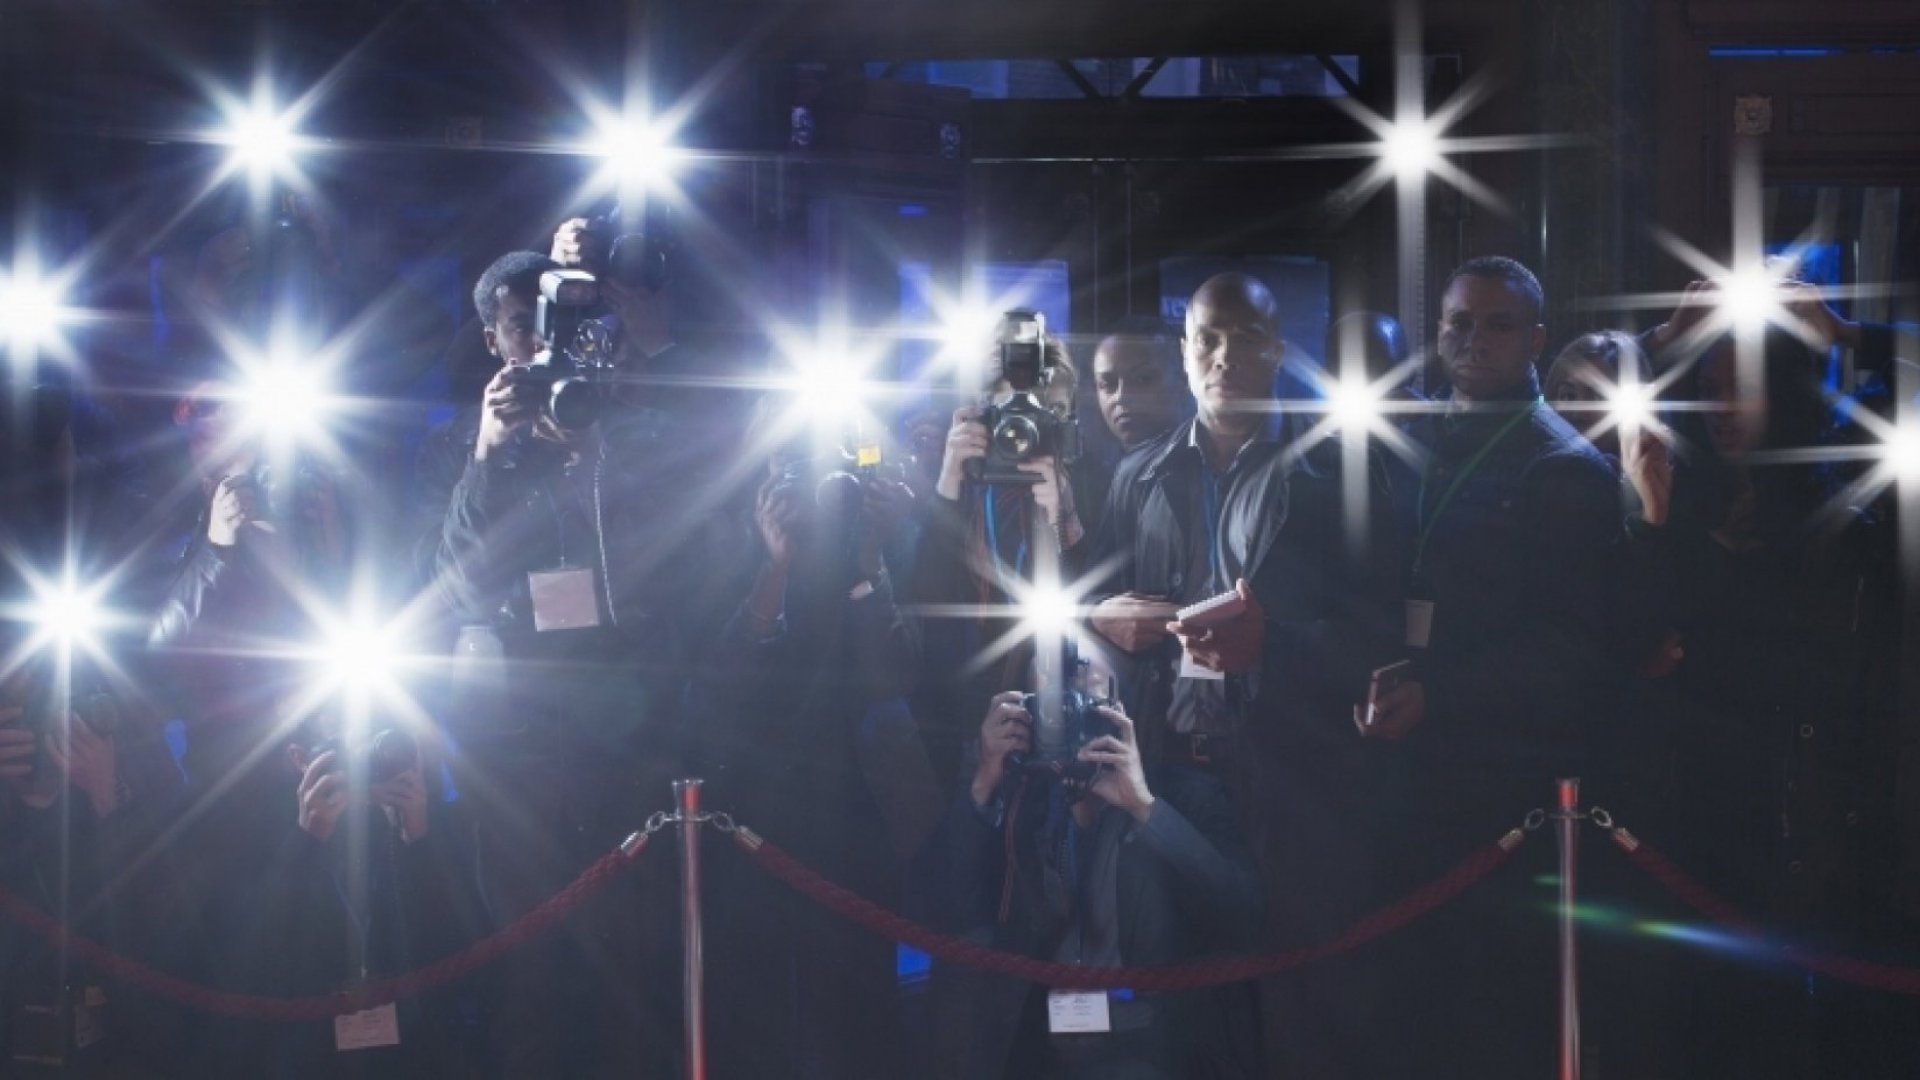 What Leaders Can Learn From the Oscars Outcry